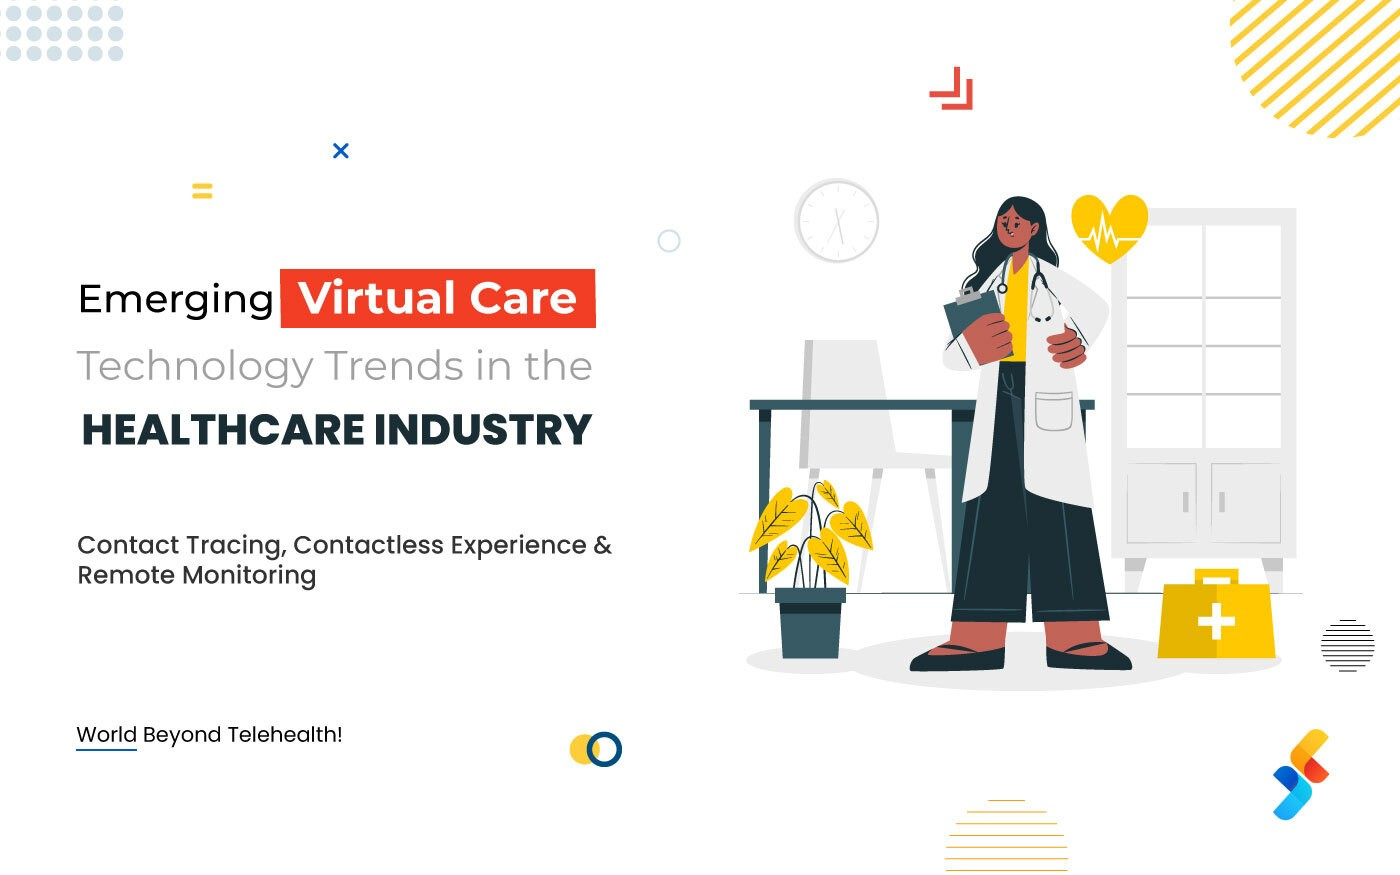 Emerging Virtual Care Technology Trends in the Healthcare Industry